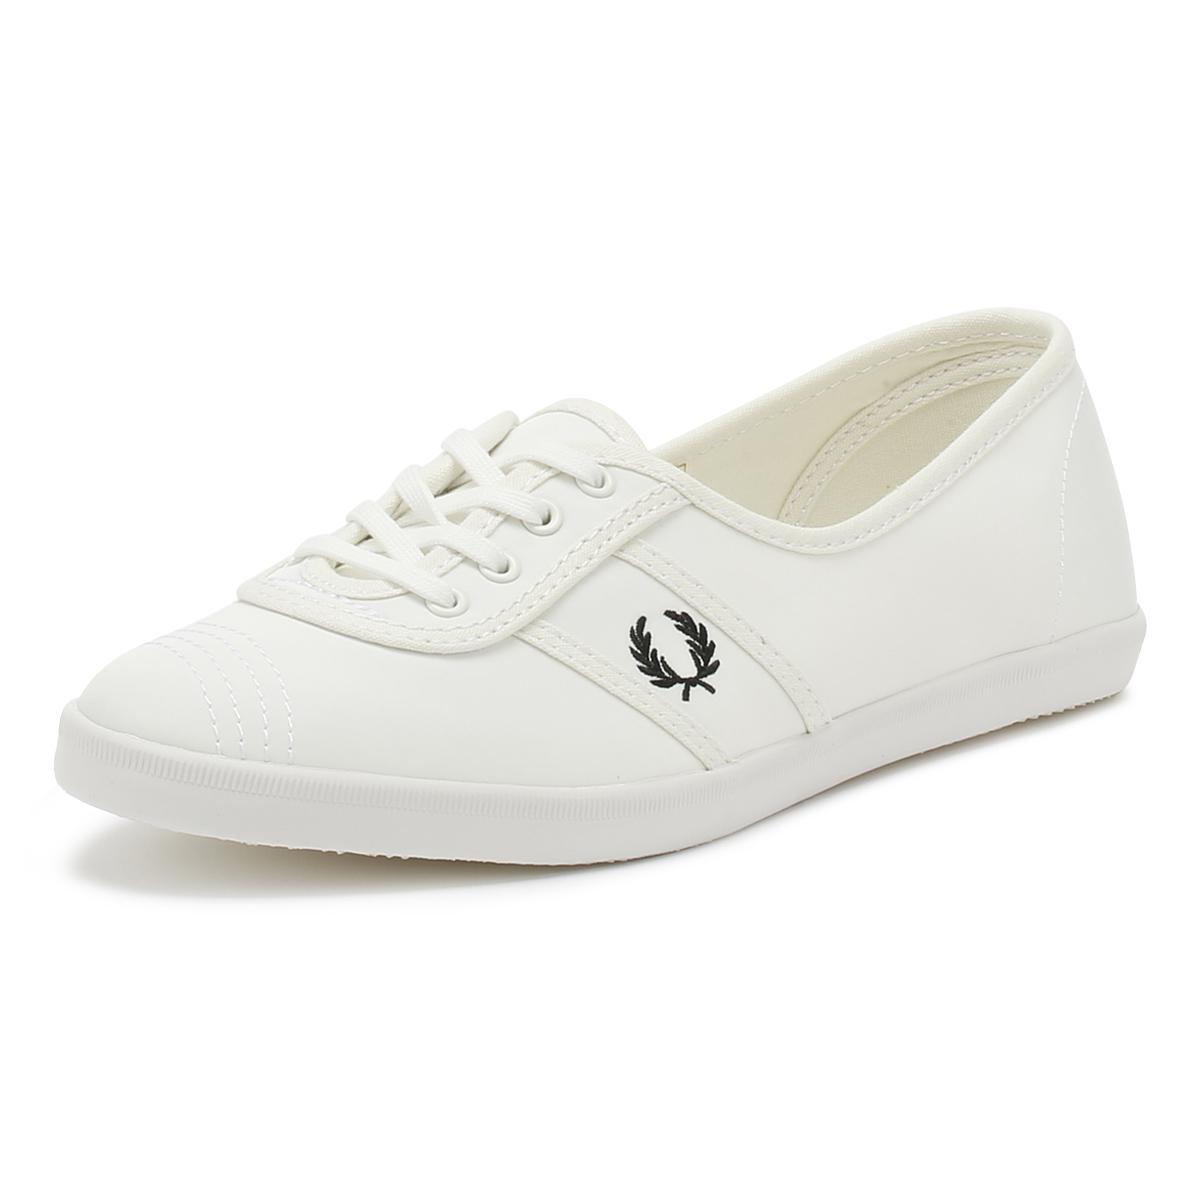 67ad3dbdd8 Lyst - Fred Perry Womens Snow White   Black Aubrey Poly Trainers in ...